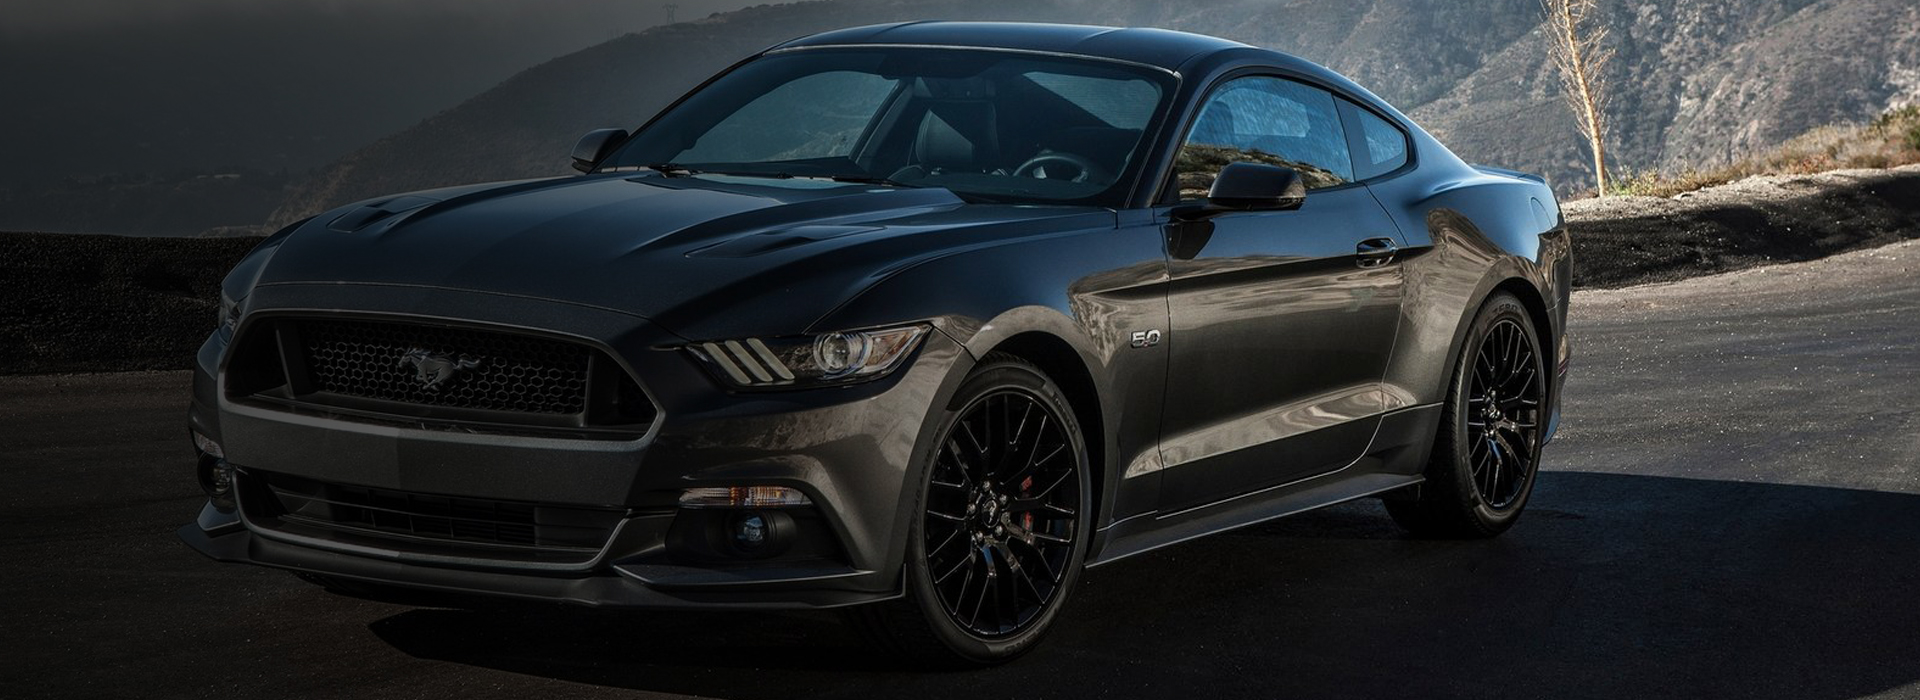 The Best Used Cars In San Diego In 2021